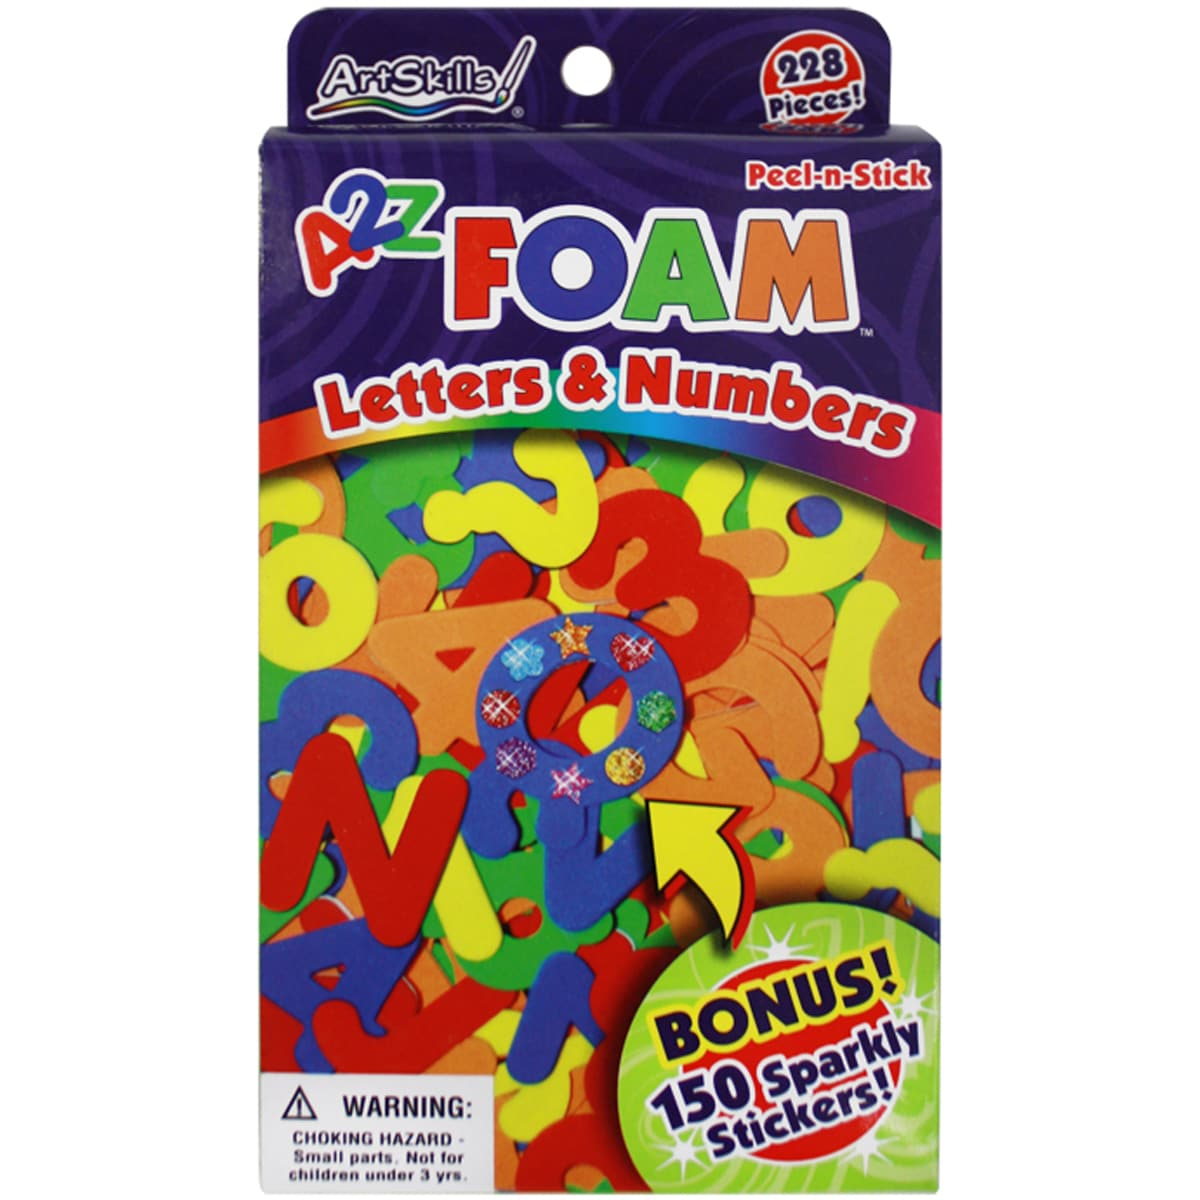 UNASSIGNED Peel-N-Stick Foam Letters & Numbers 228/Pkg-Wi...